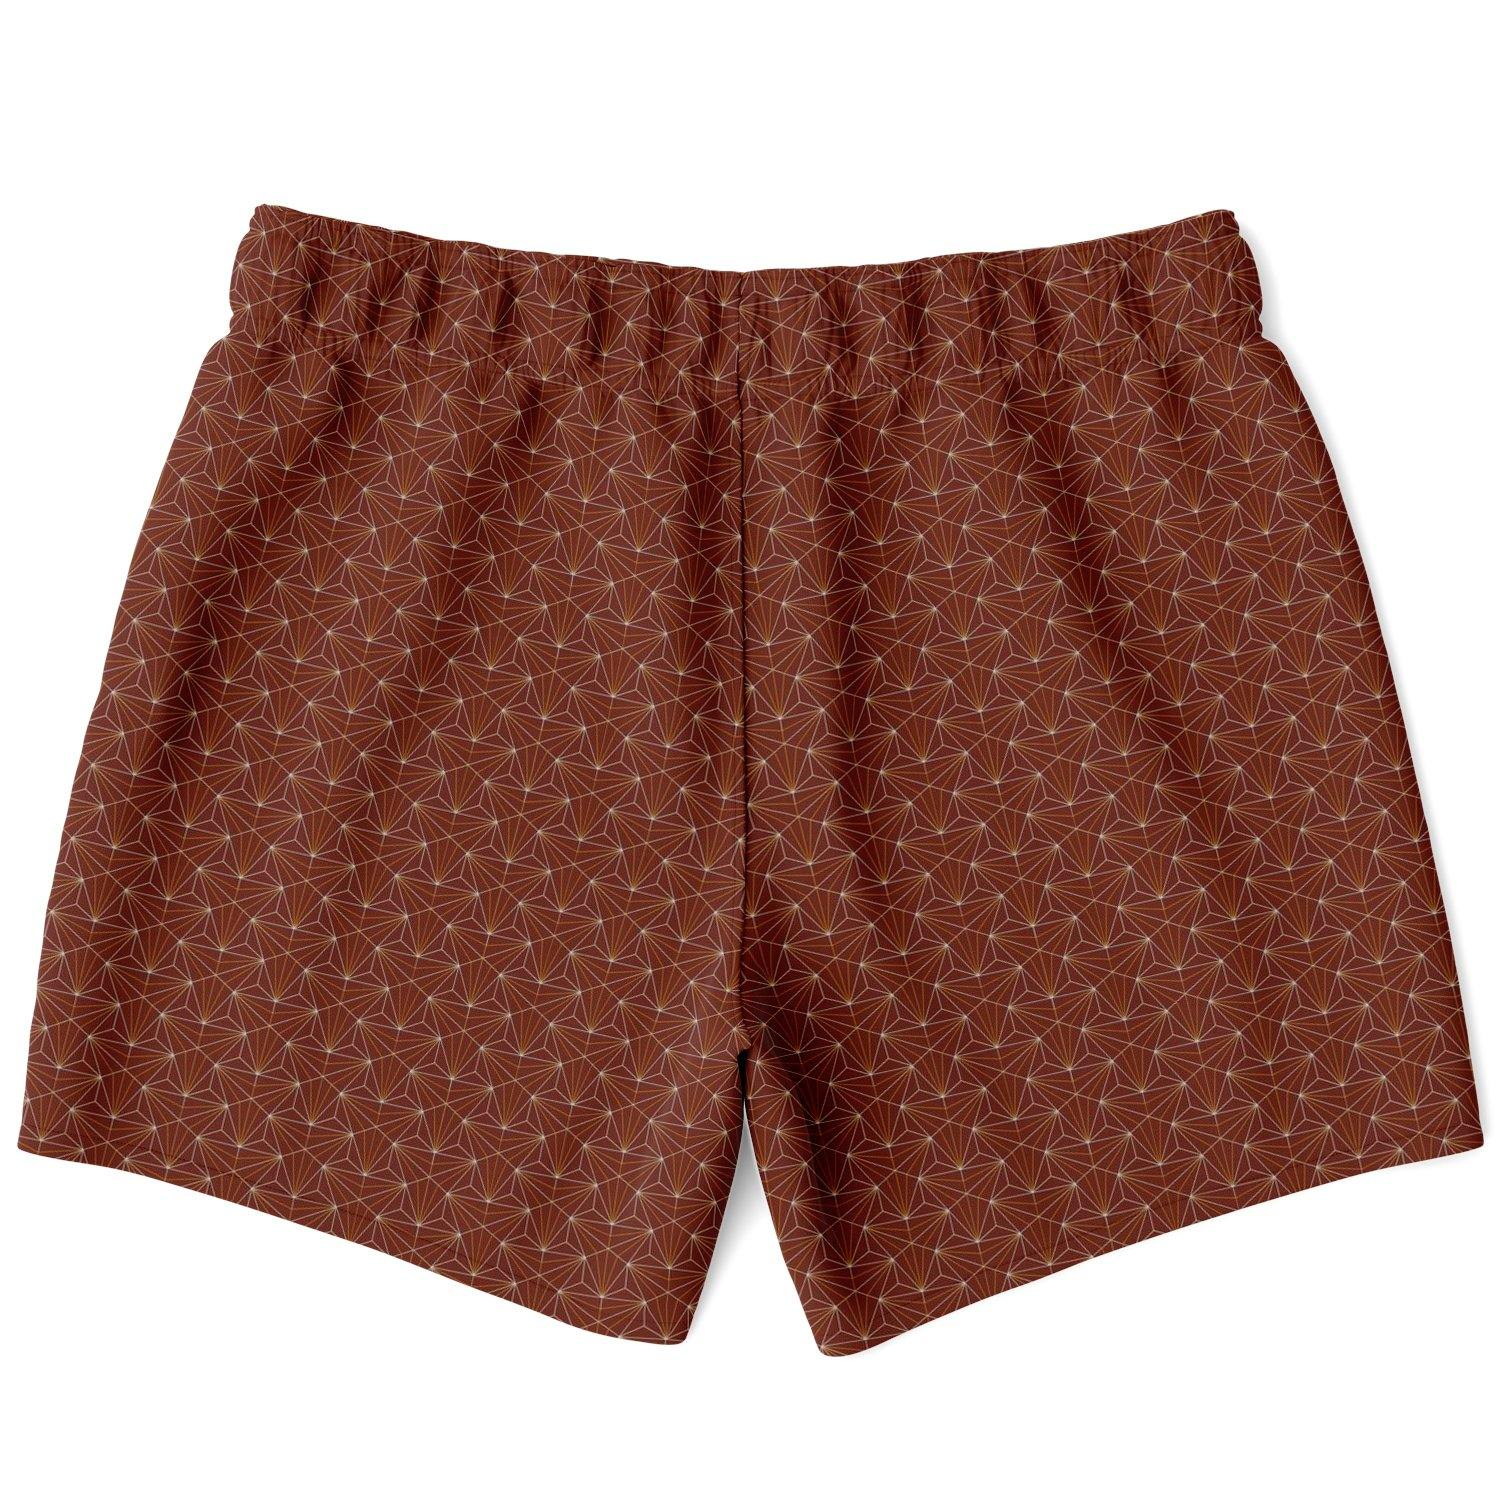 Terra Cotta Sacred Connections Swim Trunks